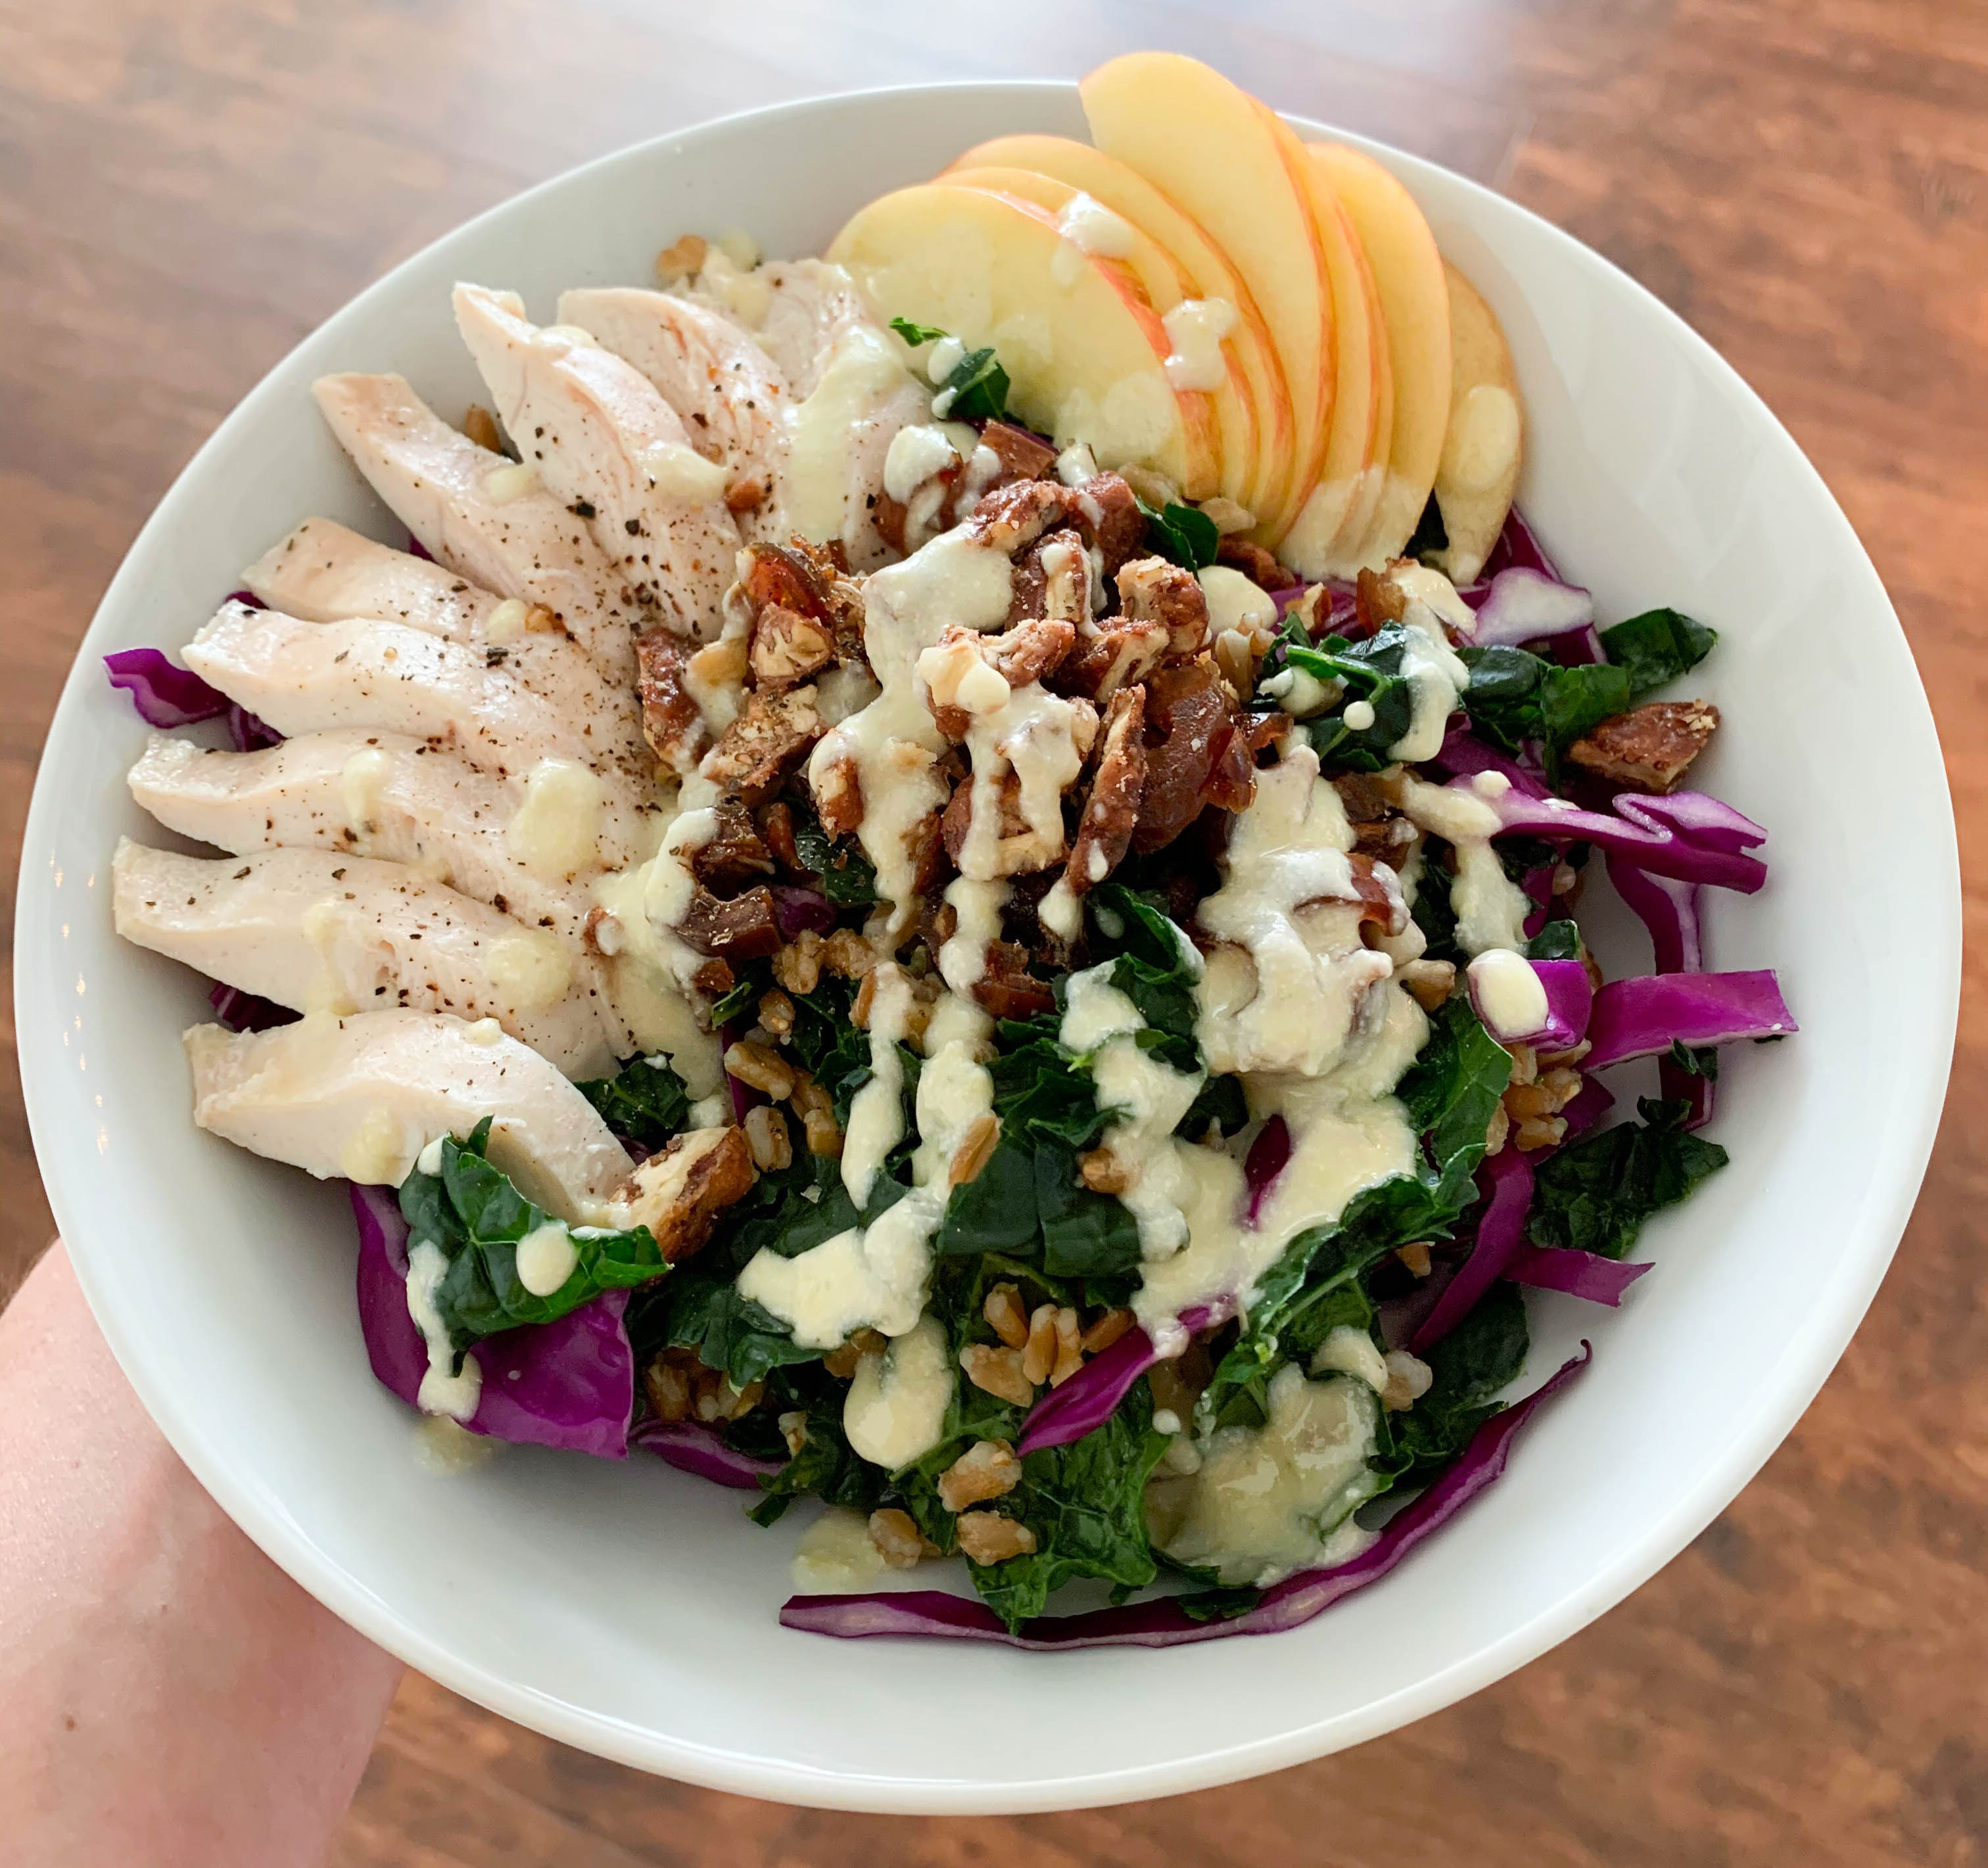 Cooking COREner with Club Pilates - Kale & Cabbage Crunch Salad